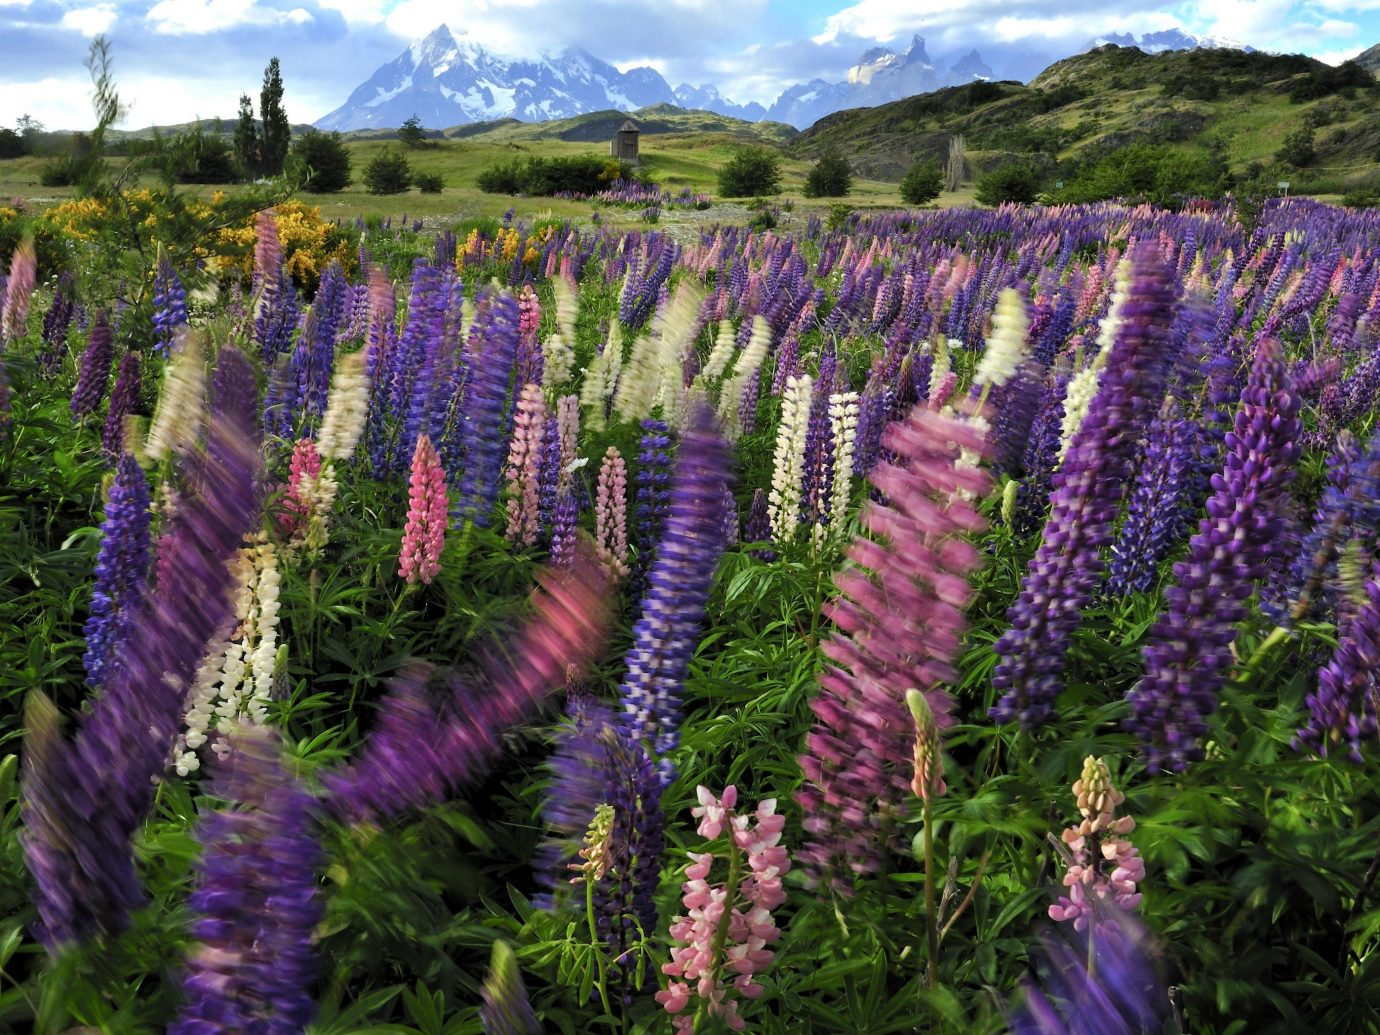 Hotels tree flower outdoor purple lupin plant lavender flora botany land plant english lavender flowering plant wildflower field french lavender Forest colored surrounded